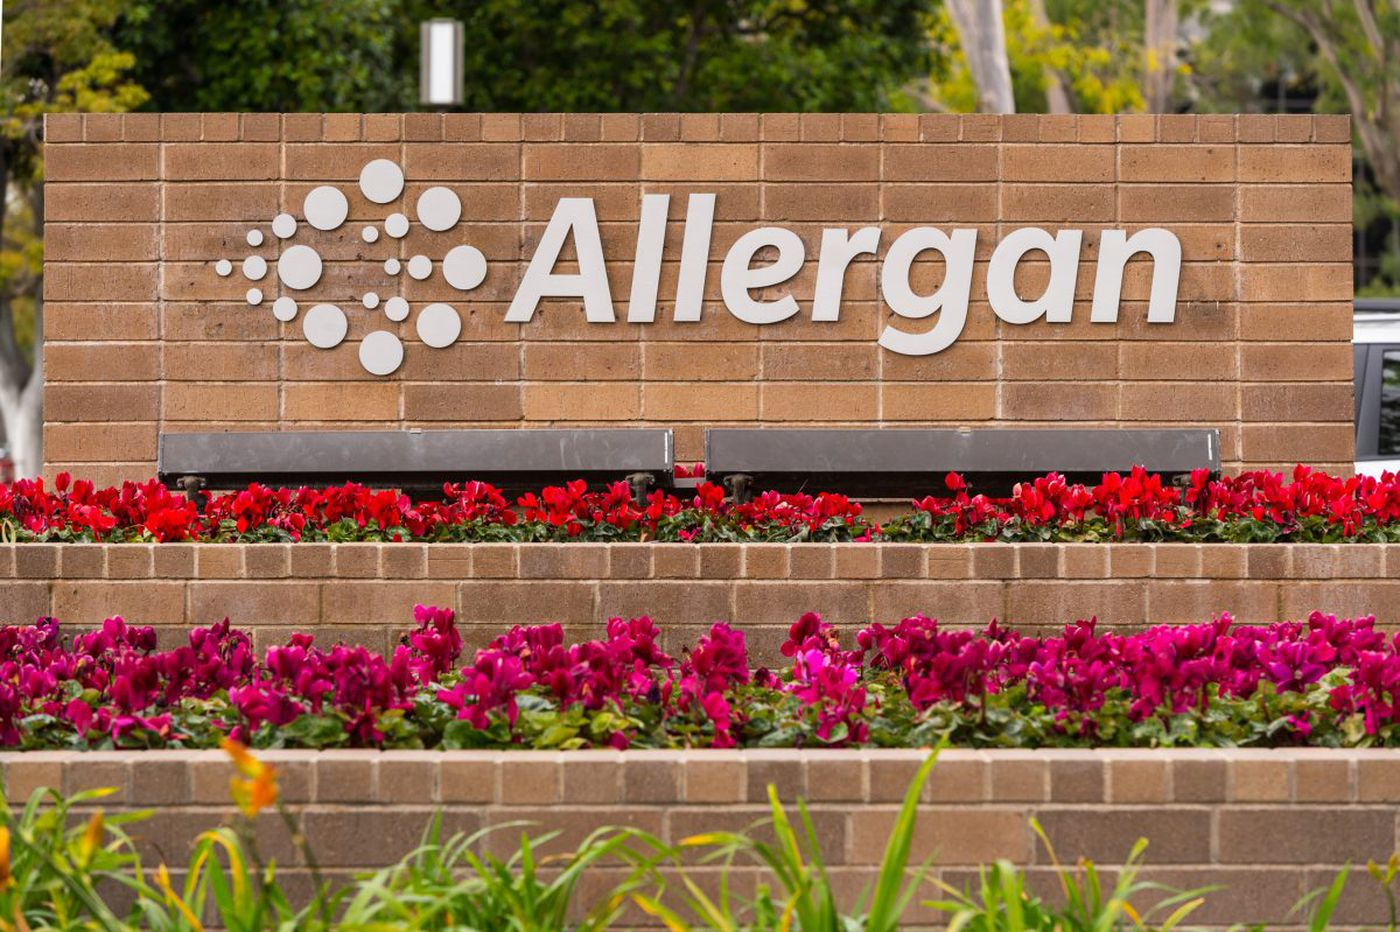 Allergan settles whistle-blower lawsuit filed by two area doctors